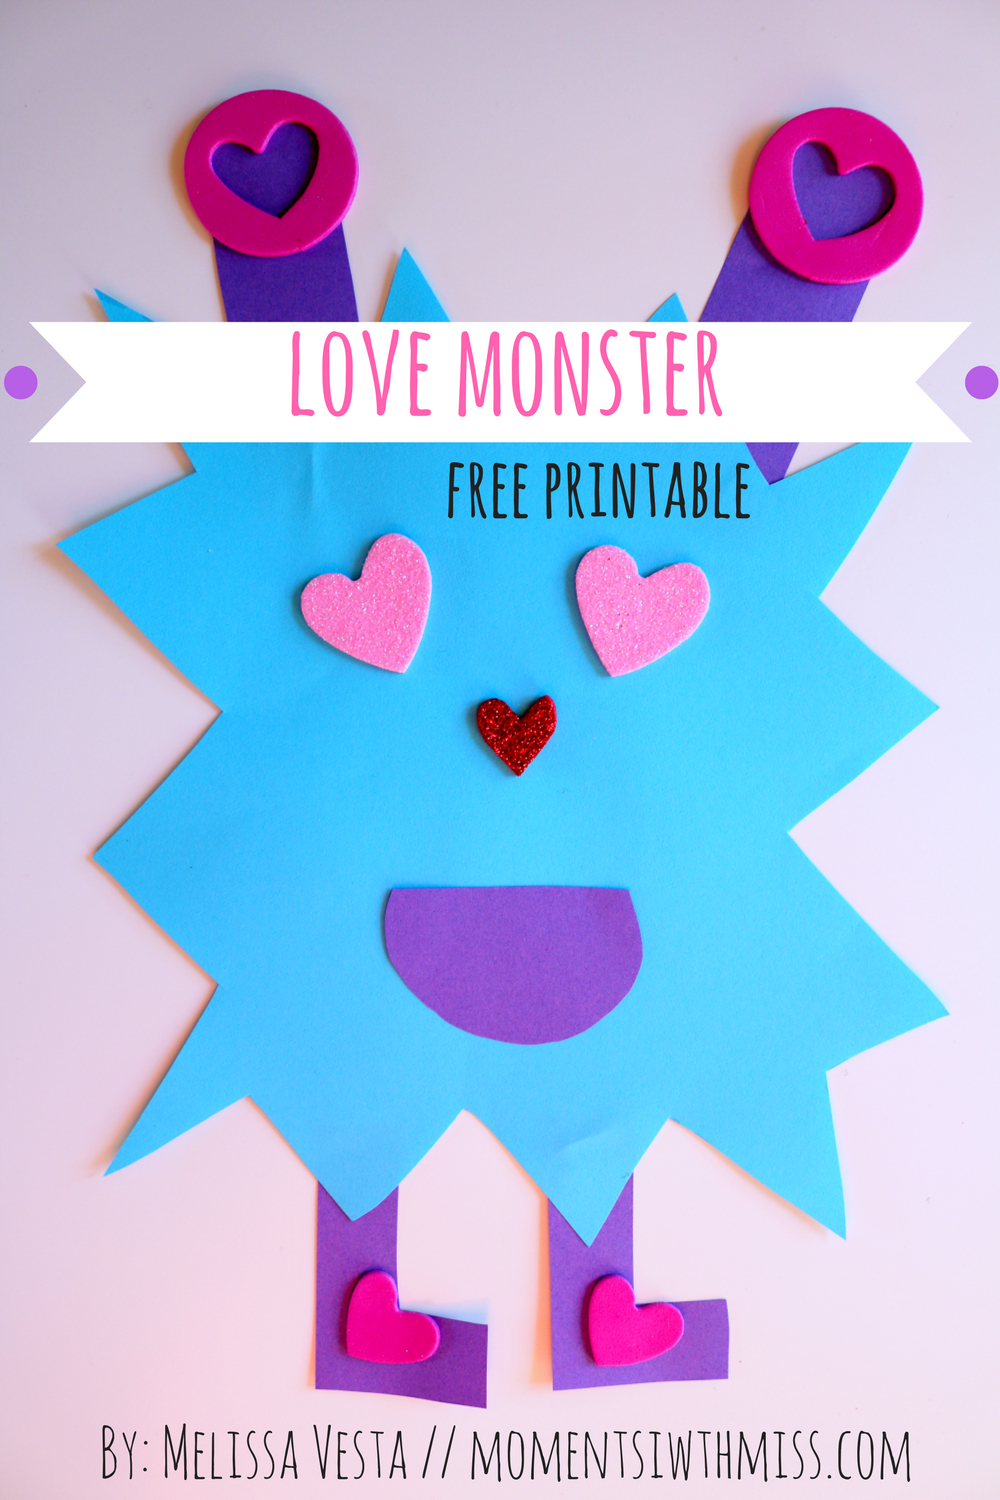 image regarding Printable Monster titled Take pleasure in Monster [No cost Printable] Times with Pass up